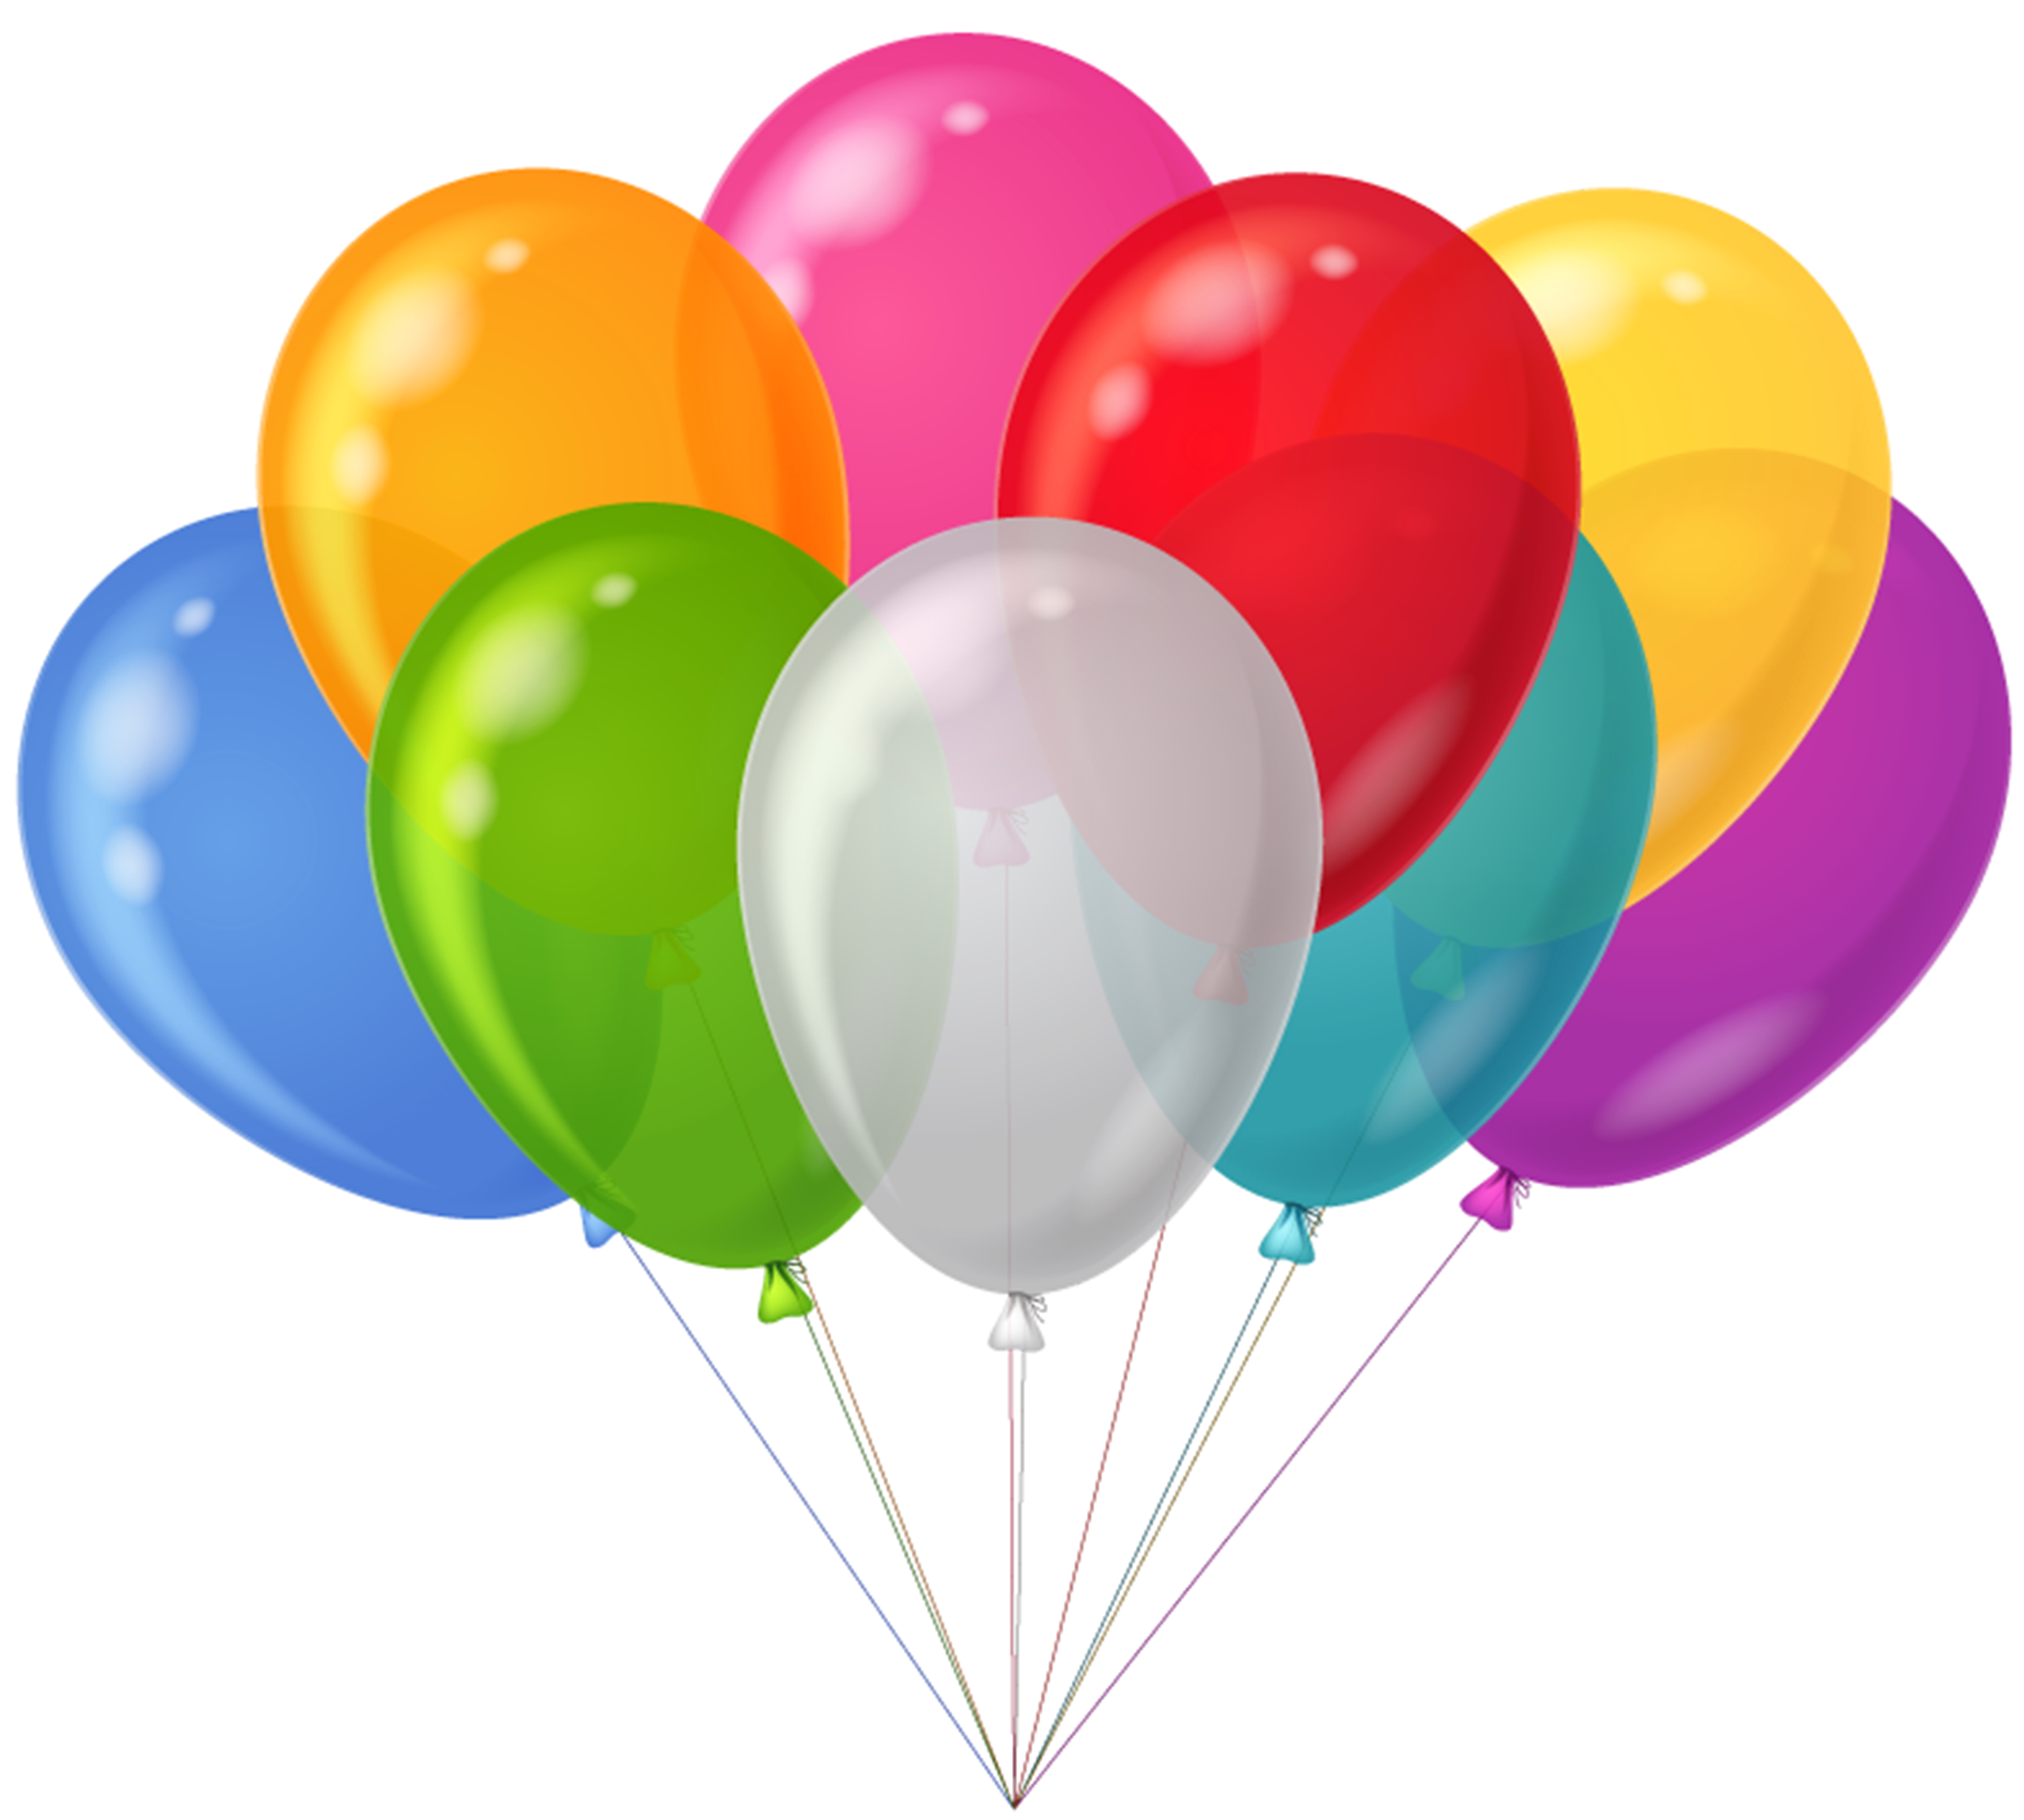 Balloon clipart #2, Download drawings